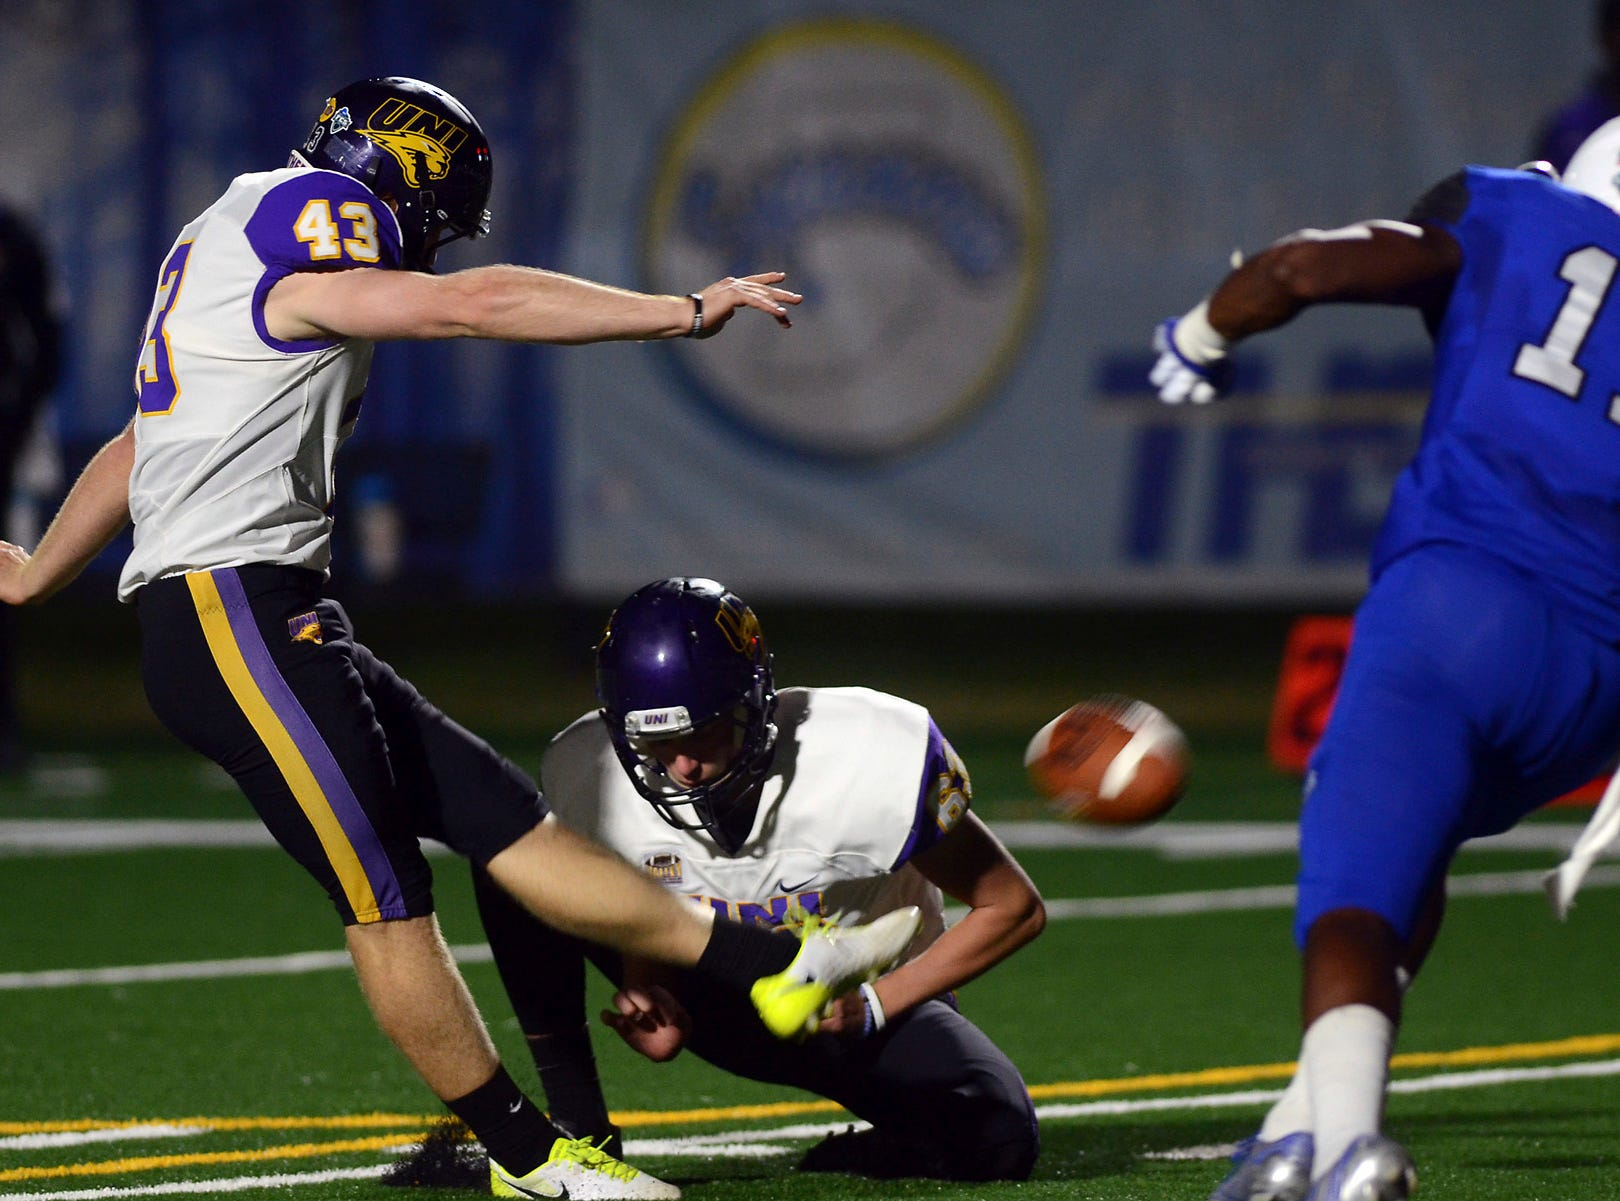 Northern Iowa's Austin Errthum kicks a field goal against Indiana State during an NCAA college football game Thursday, Sept. 27, 2018, in Terre Haute, Ind.